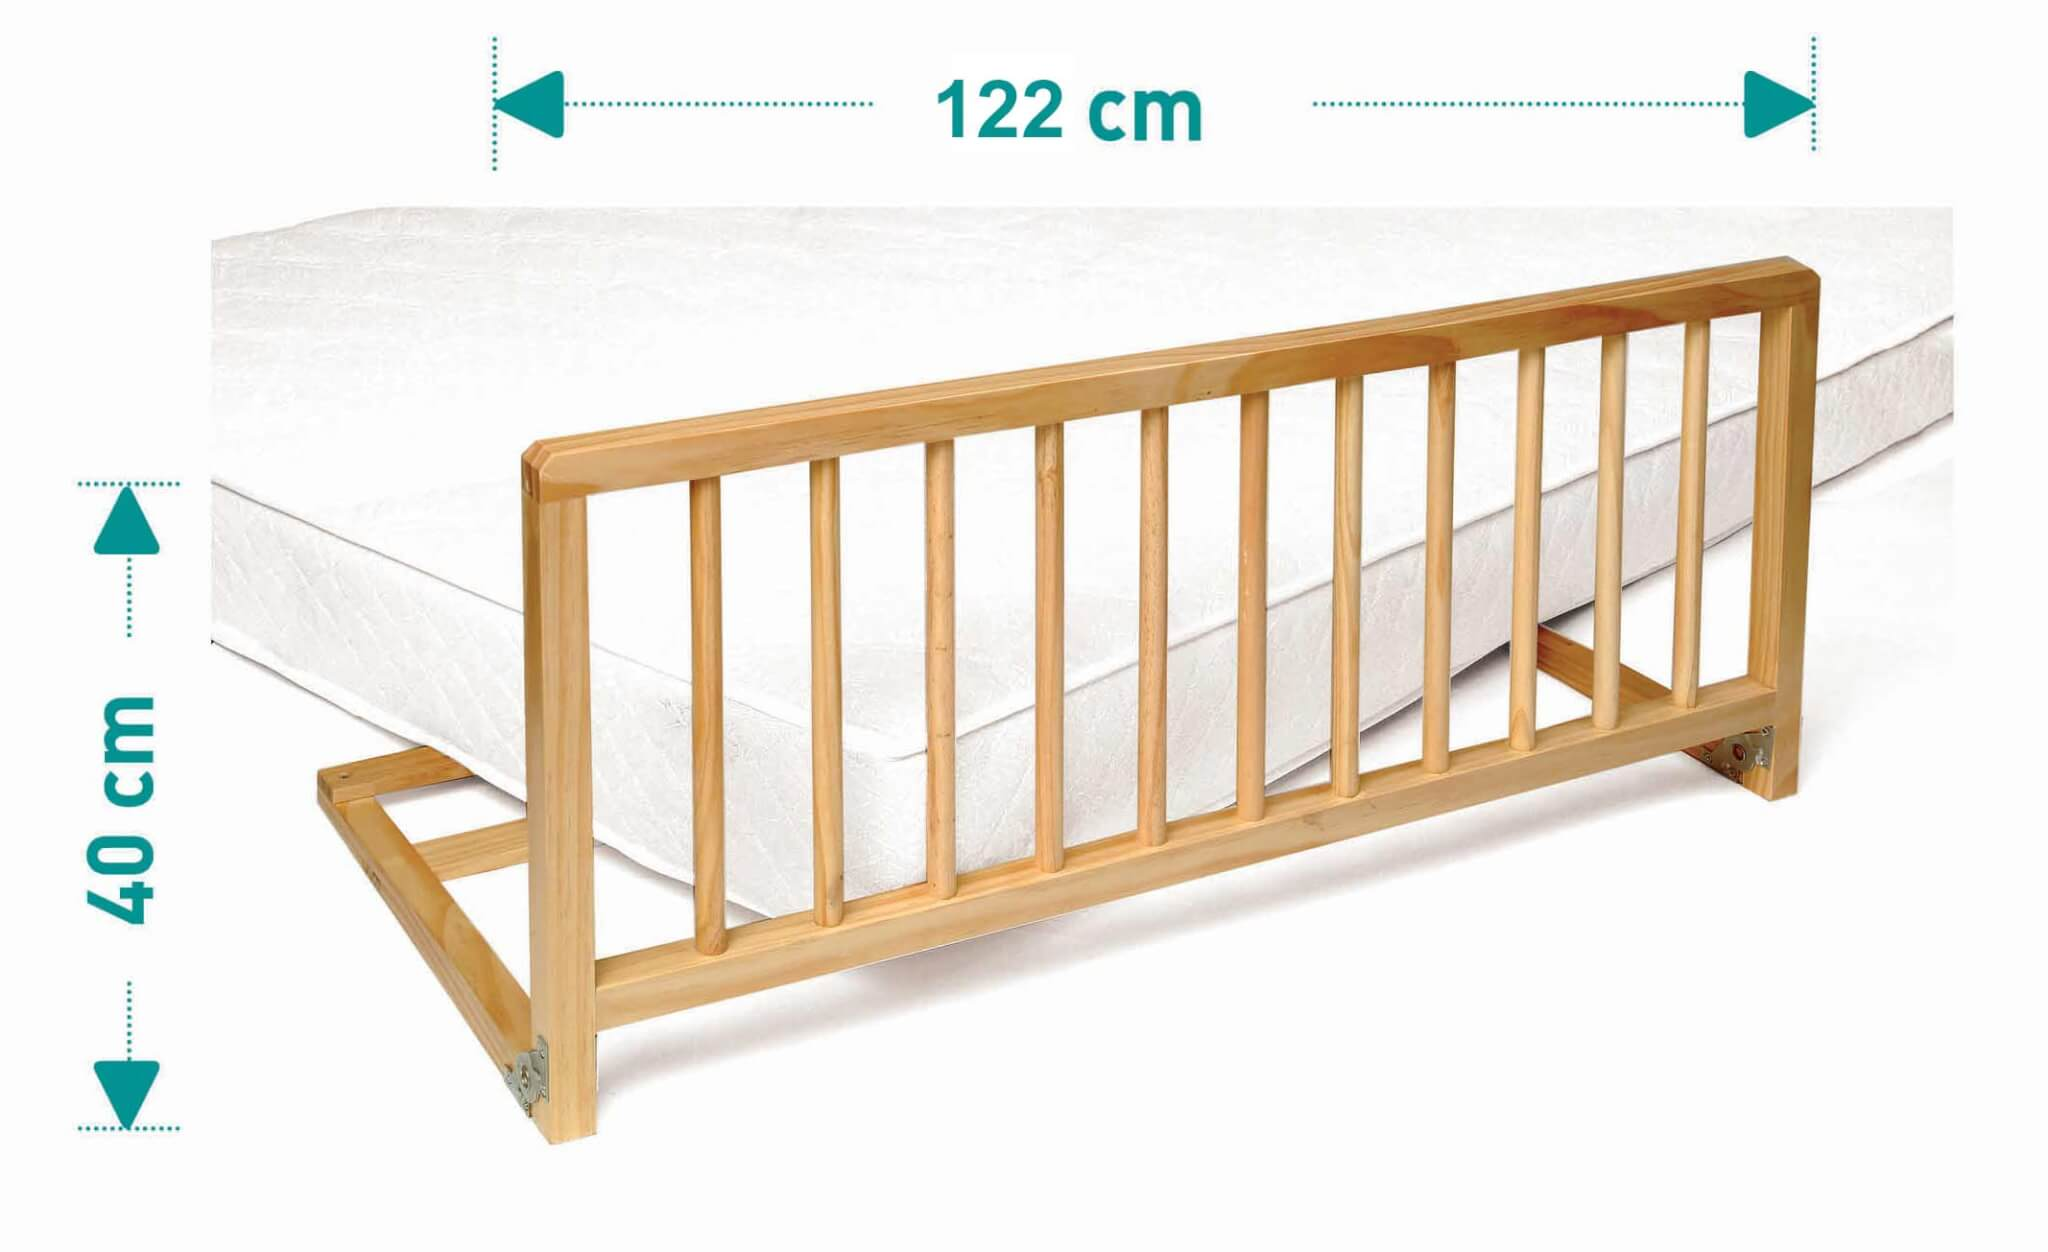 Barriere de lit livia hevea 122cm l nidalys - Barriere de lit but ...